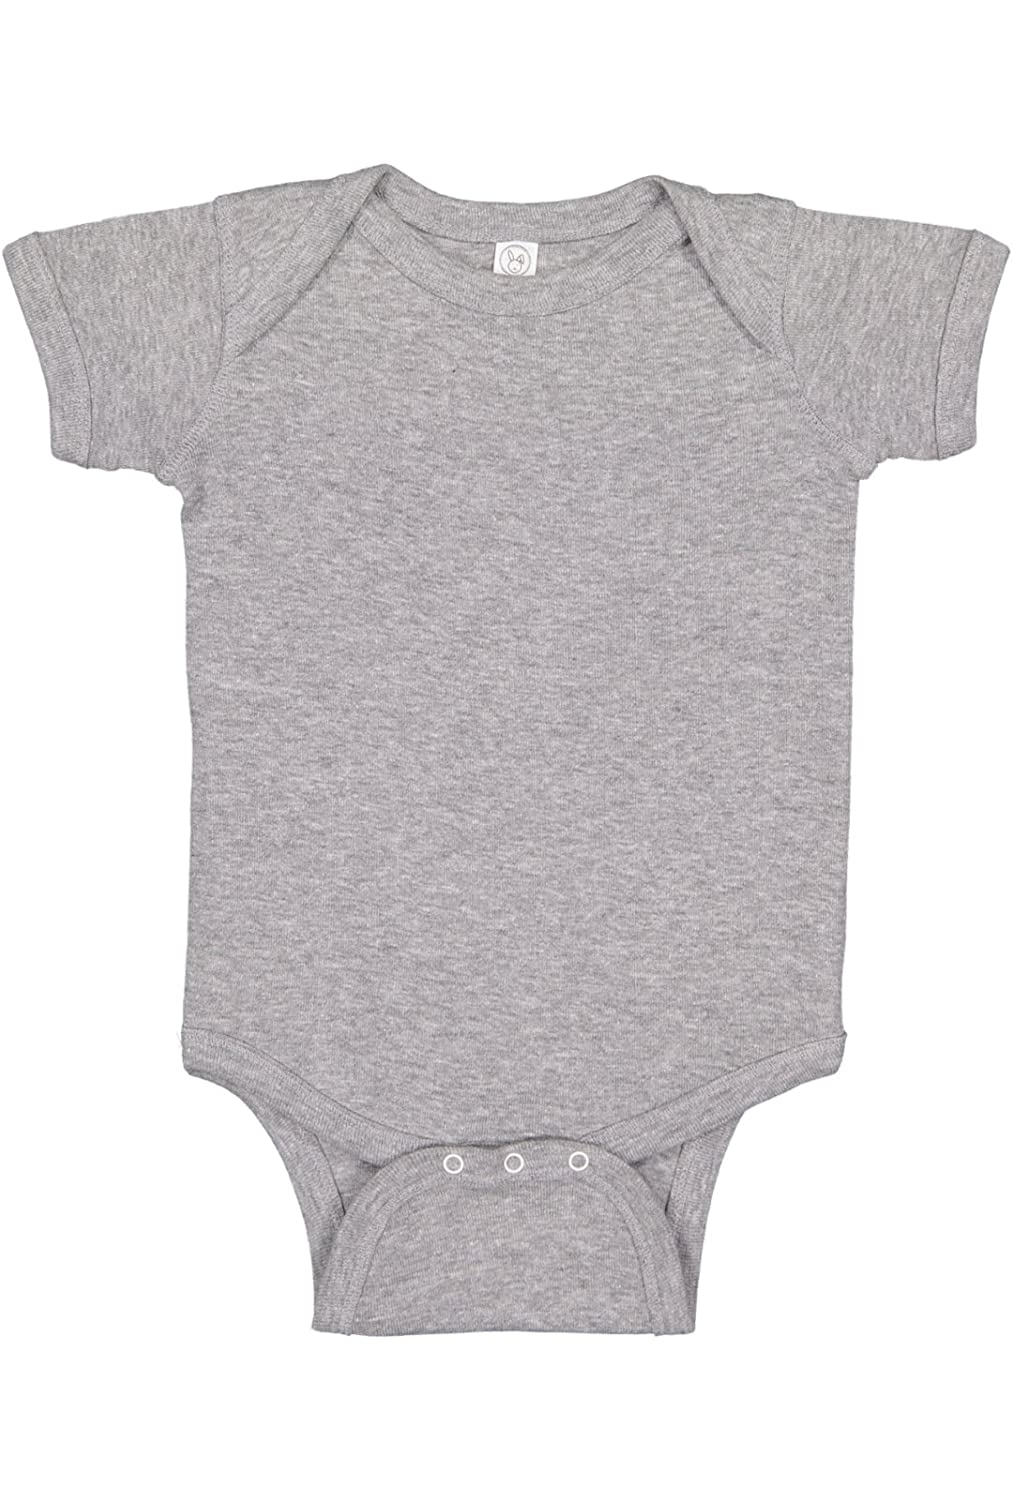 ea568bb81 Amazon.com: Rabbit Skins Infant 100% Cotton Baby Rib Lap Shoulder Short  Sleeve Bodysuit: Clothing